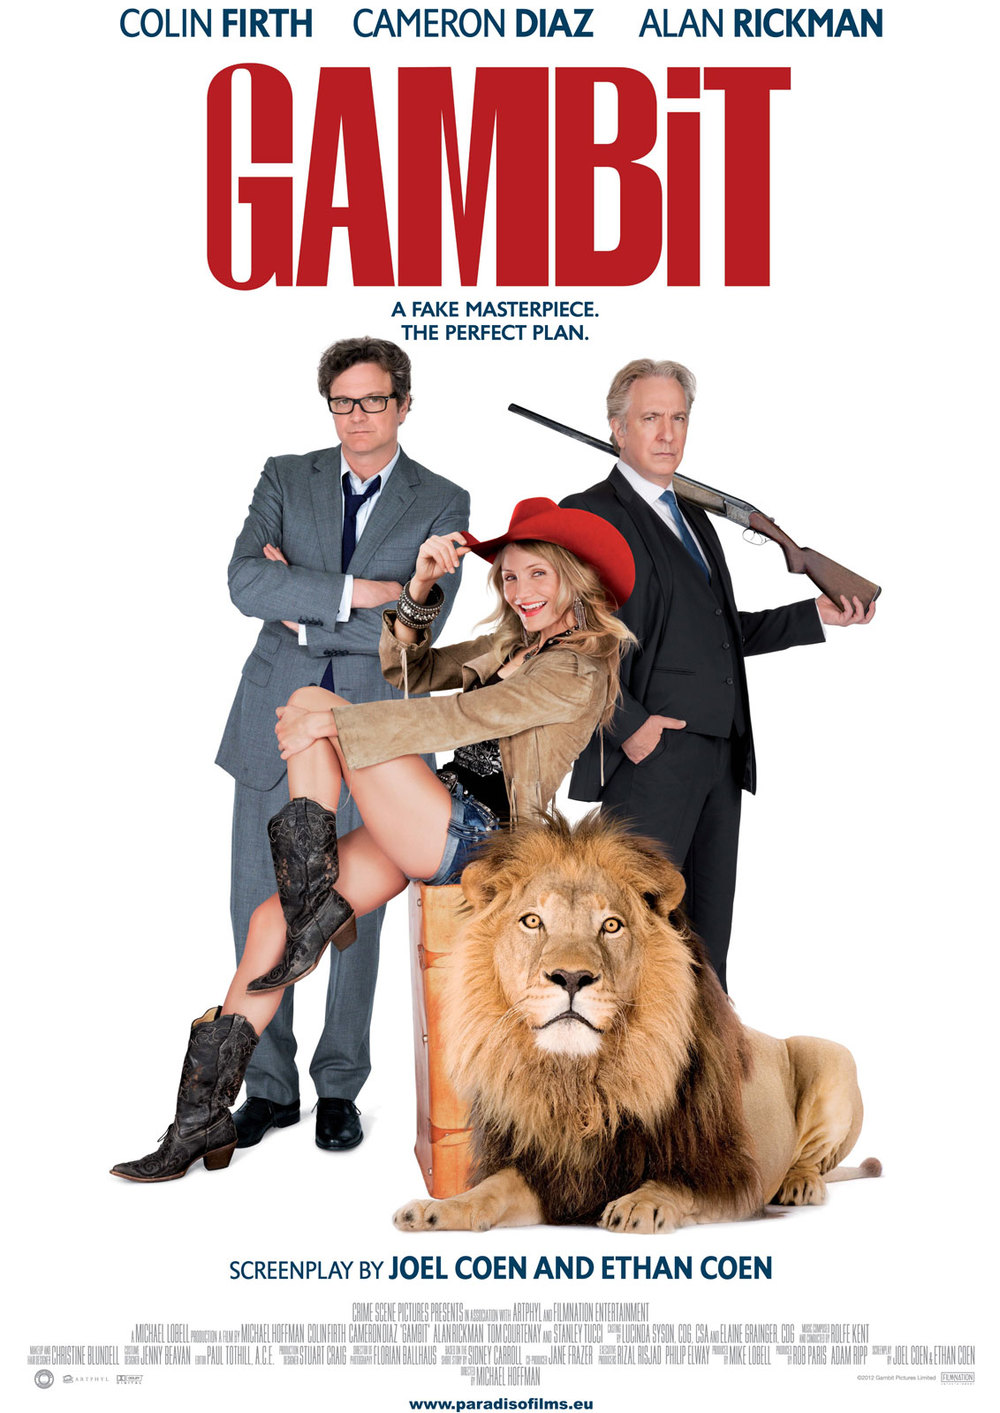 fun-trailer-for-the-coen-brothers-gambit